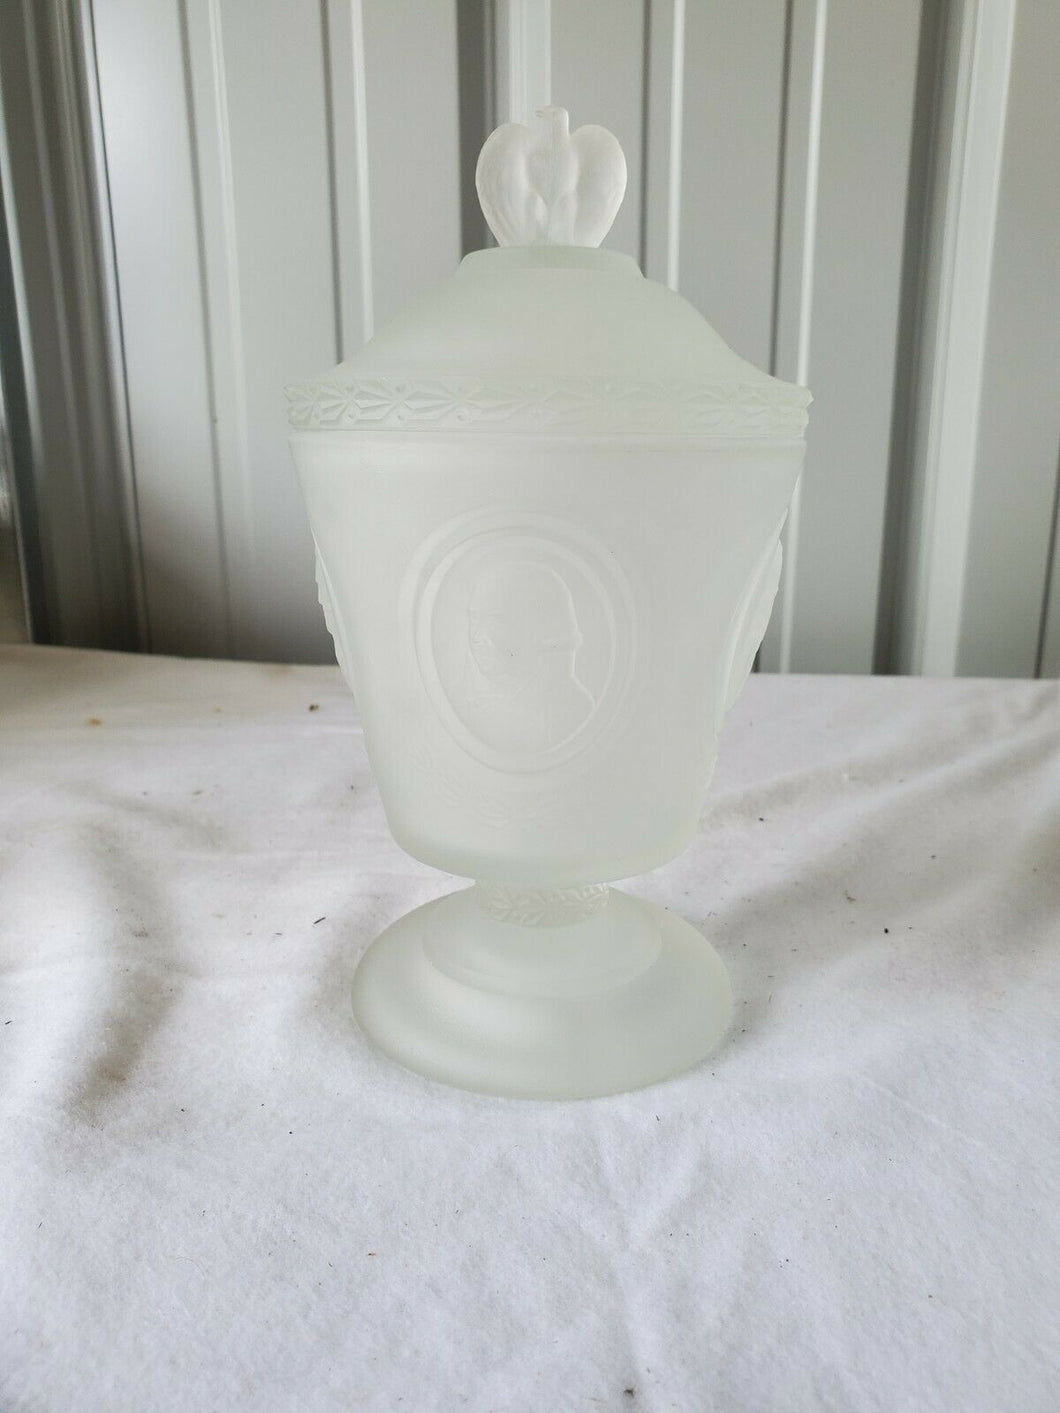 Vintage 1976 Fenton Bicentennial Founding Fathers Frosted Glass Candy Dish